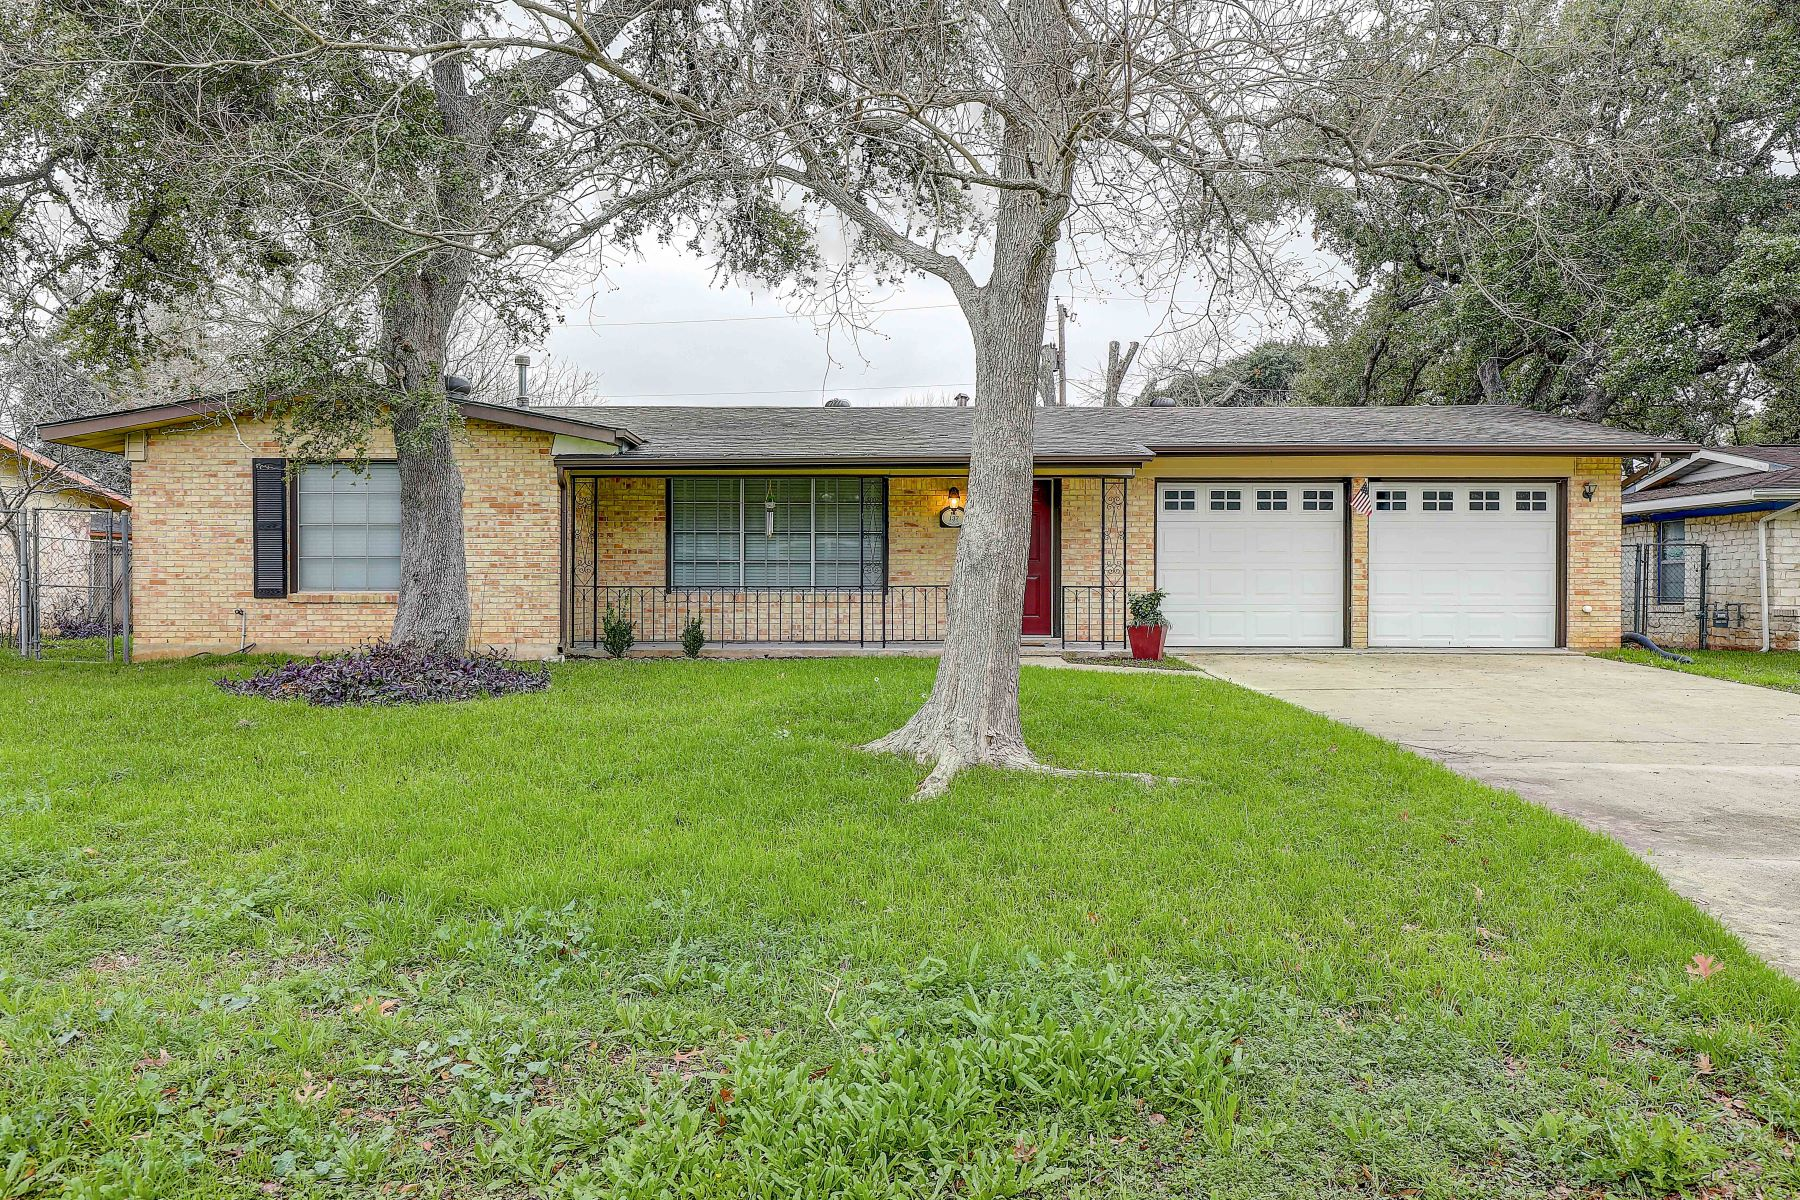 Single Family Homes for Active at Move In Ready Home In Old Rose Gardensc 137 Oaklane Drive Universal City, Texas 78148 United States